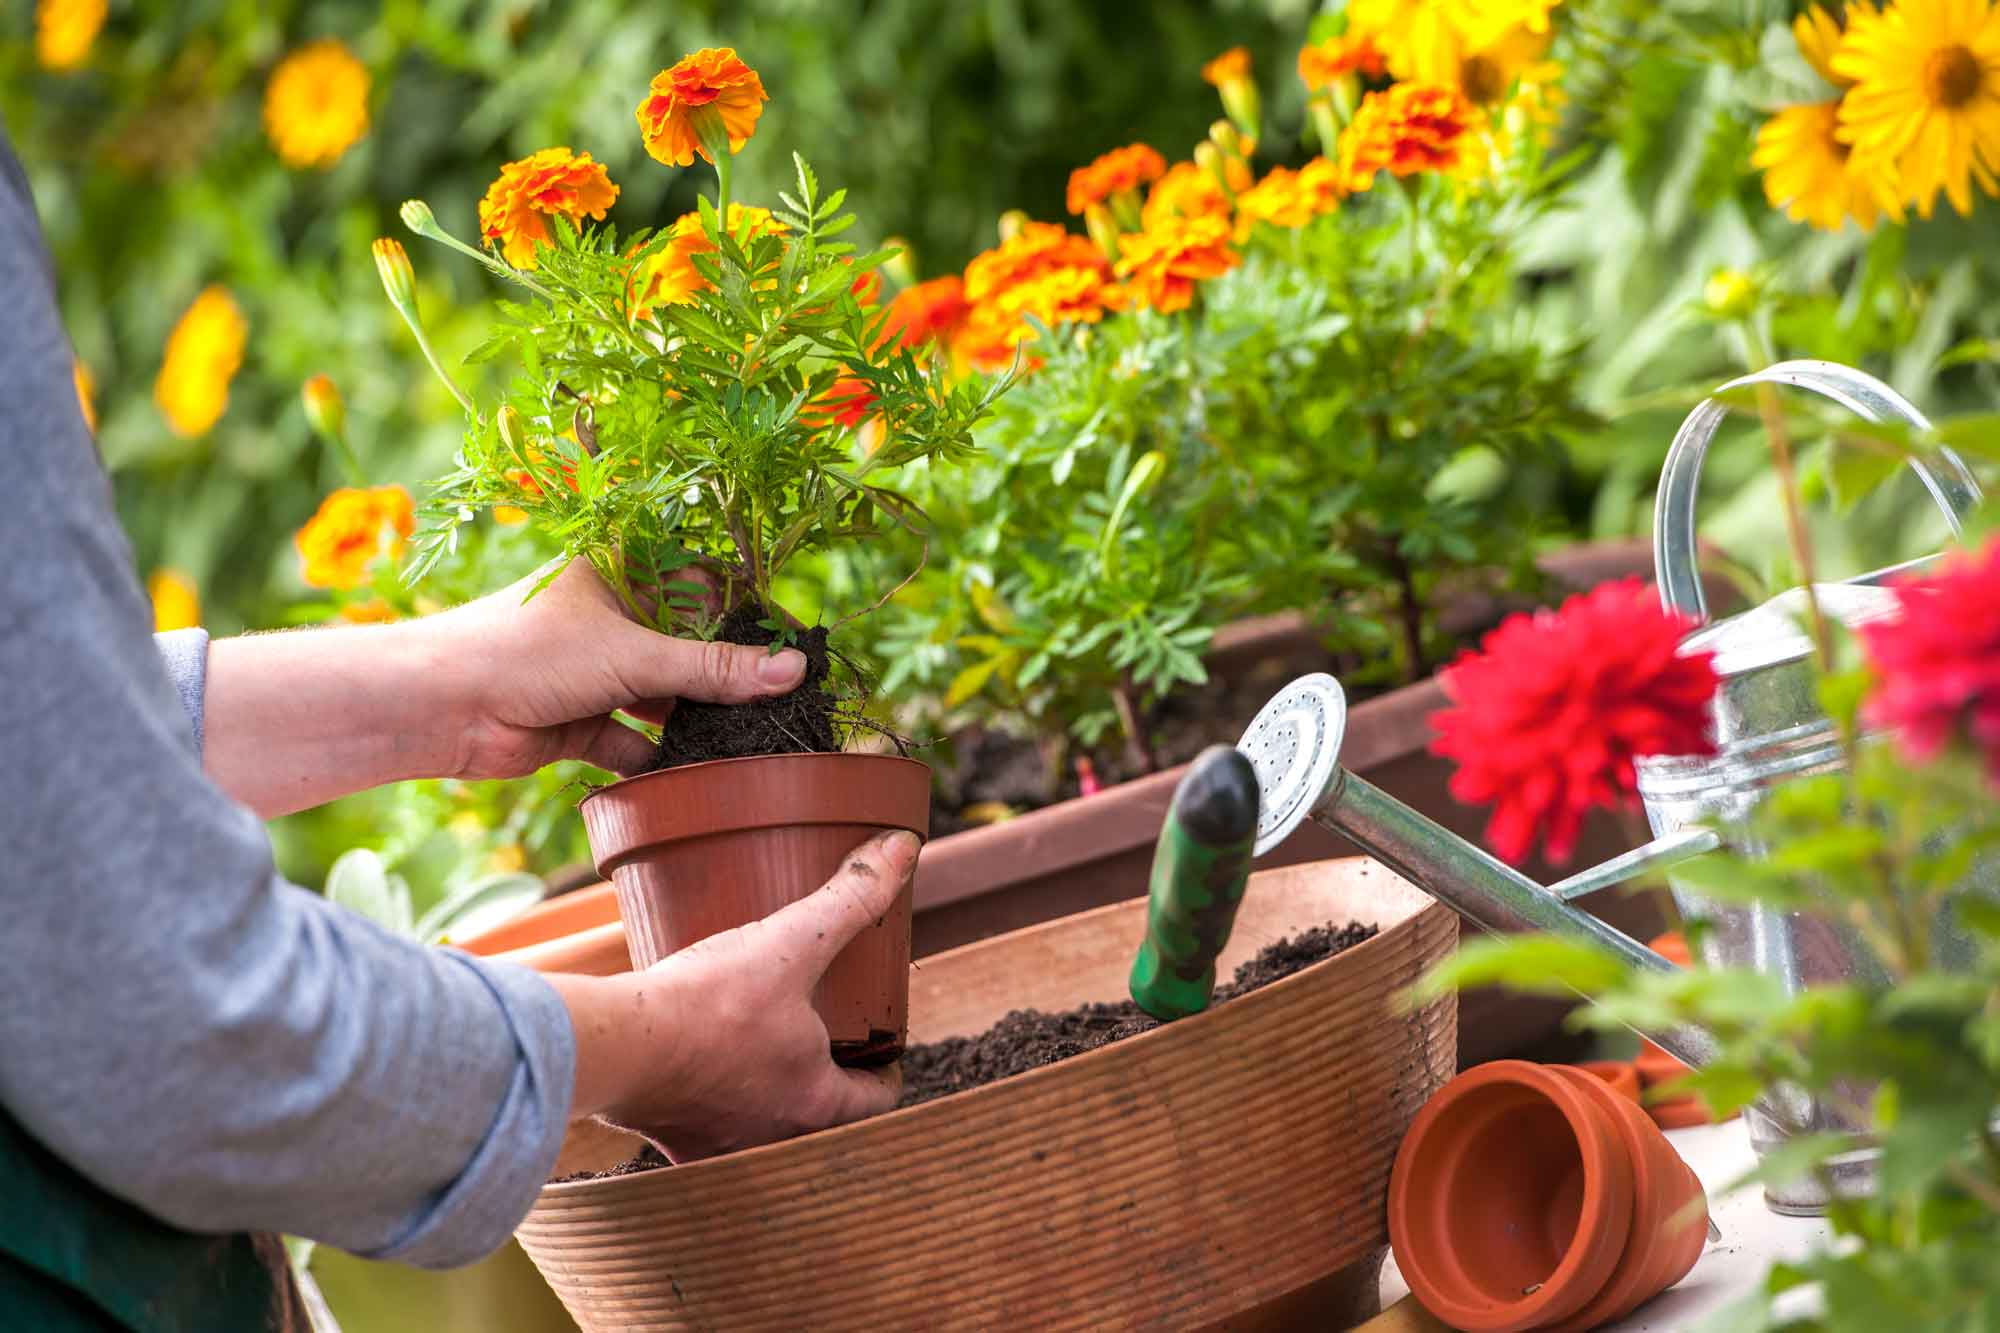 Gardening To Do Lists by Month for Houston